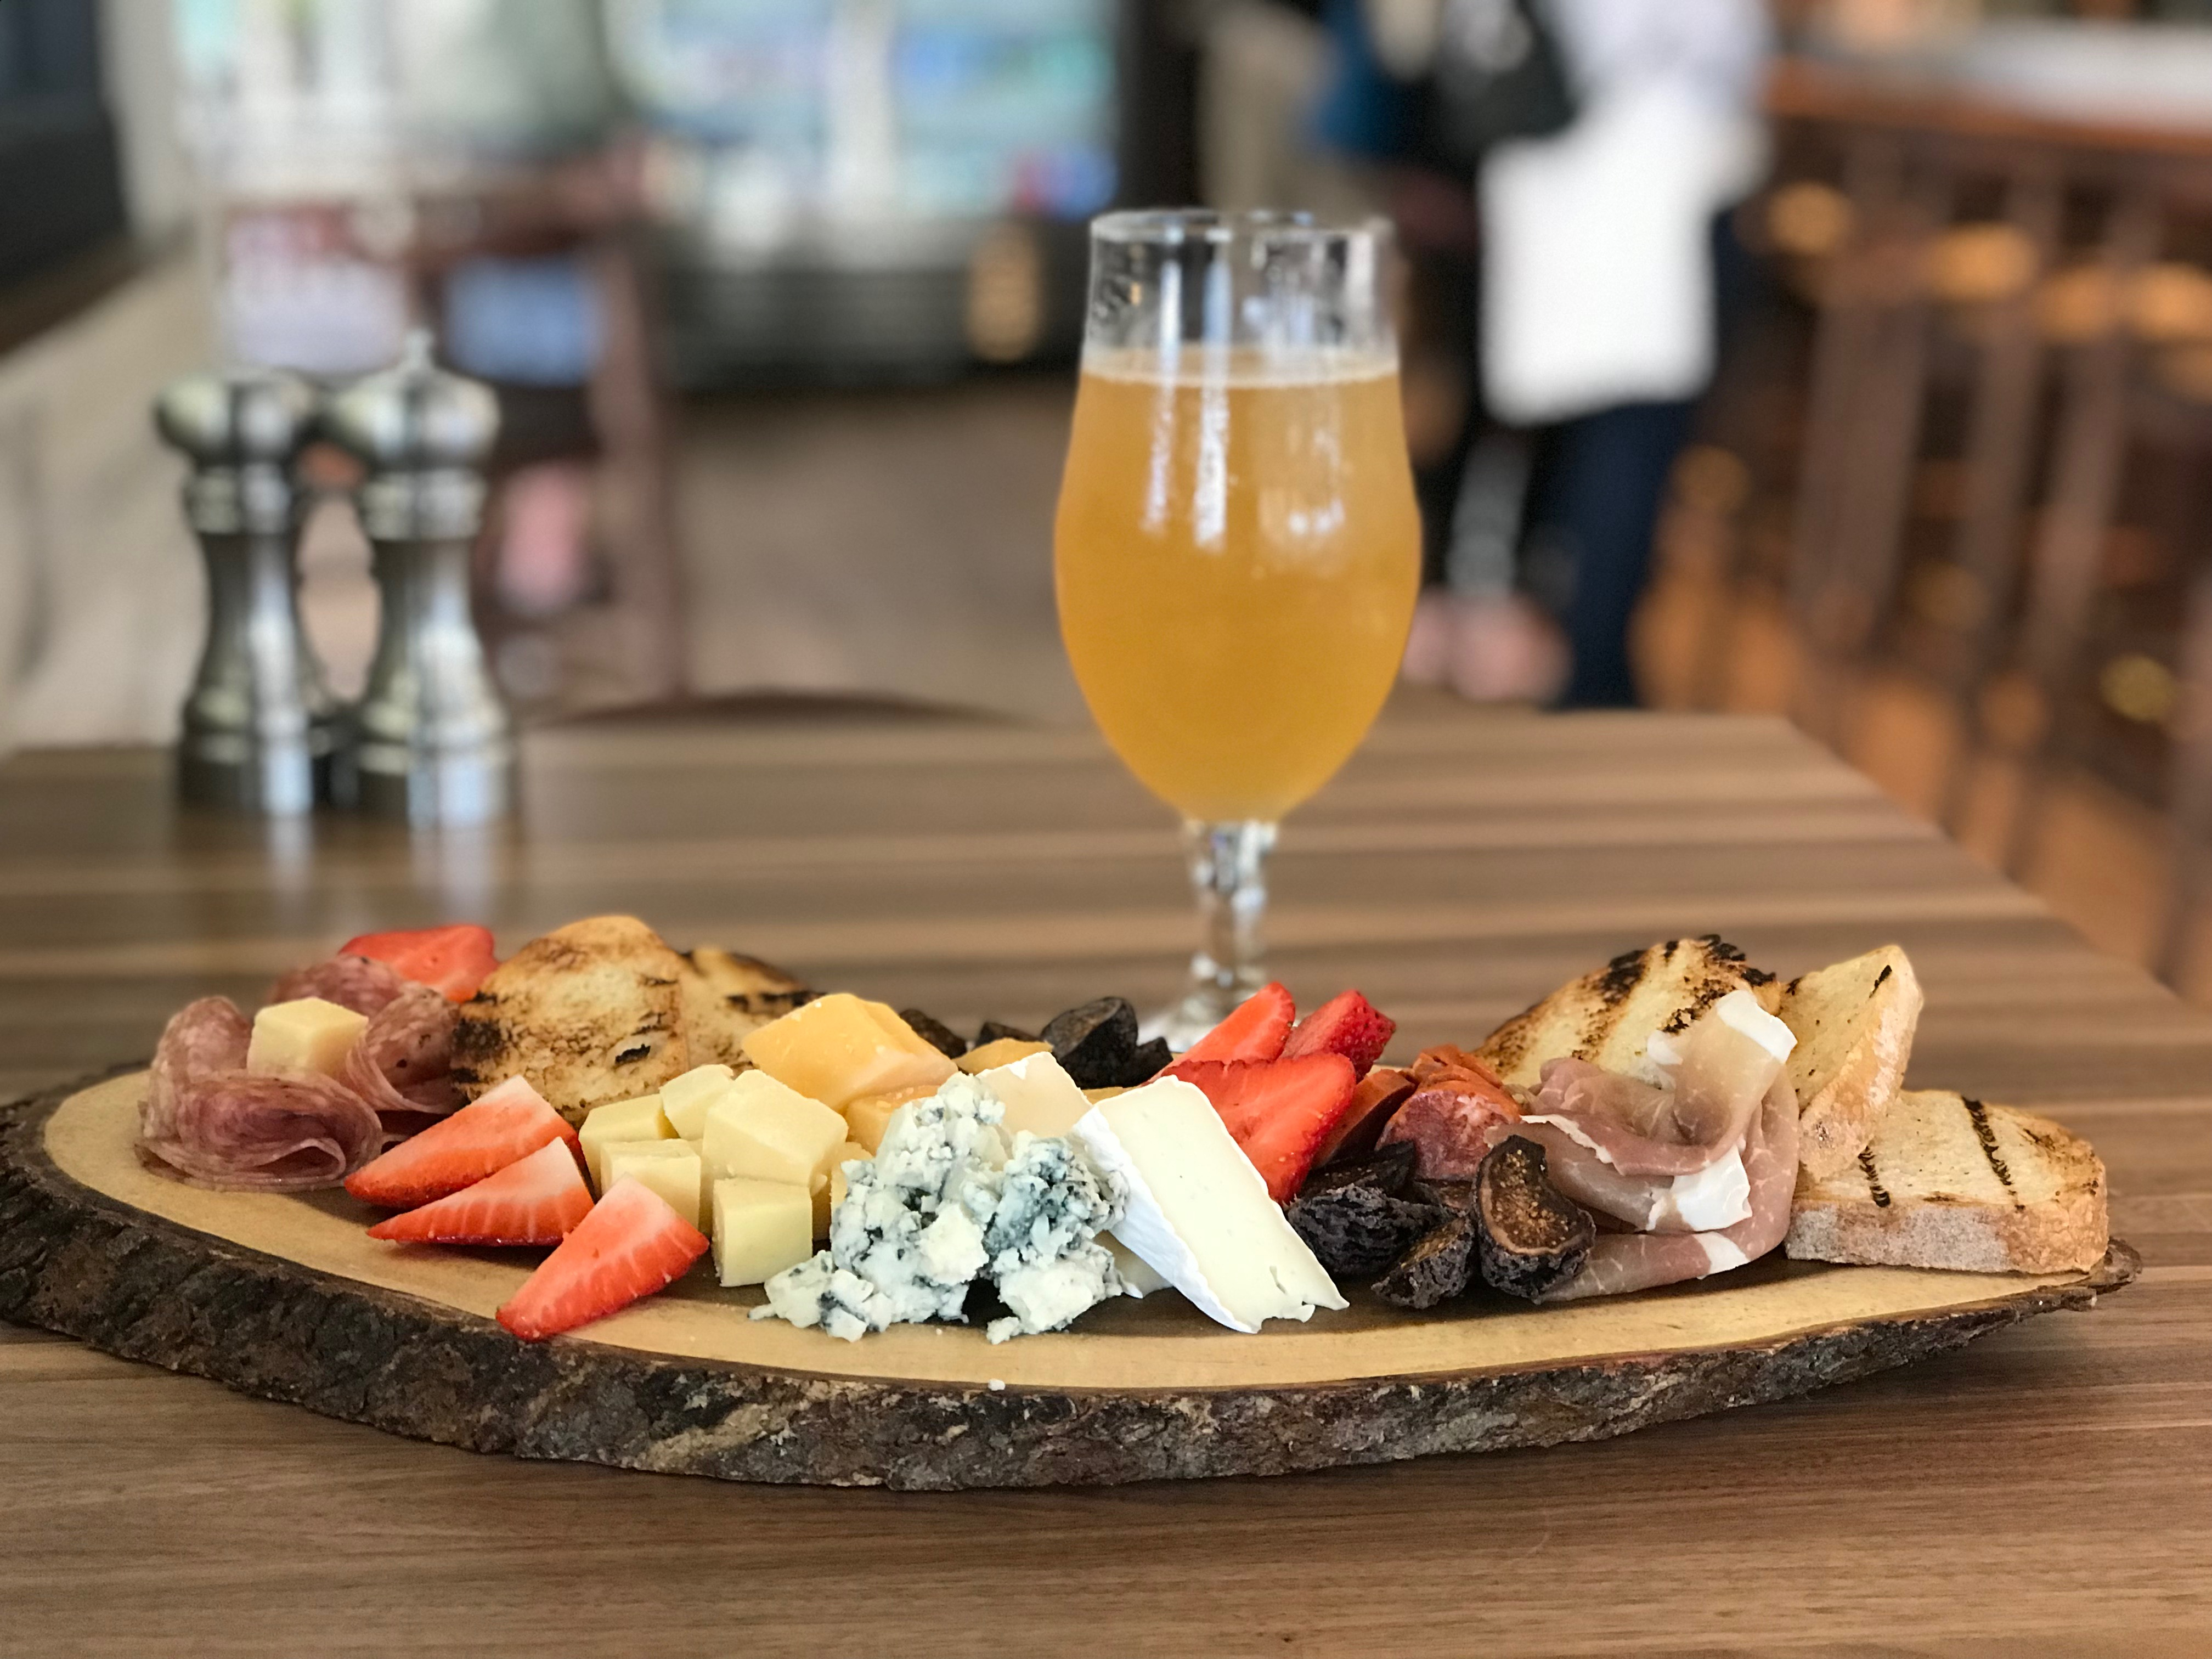 Toyon's charcuterie plate pair perfectly with their on-tap kombucha